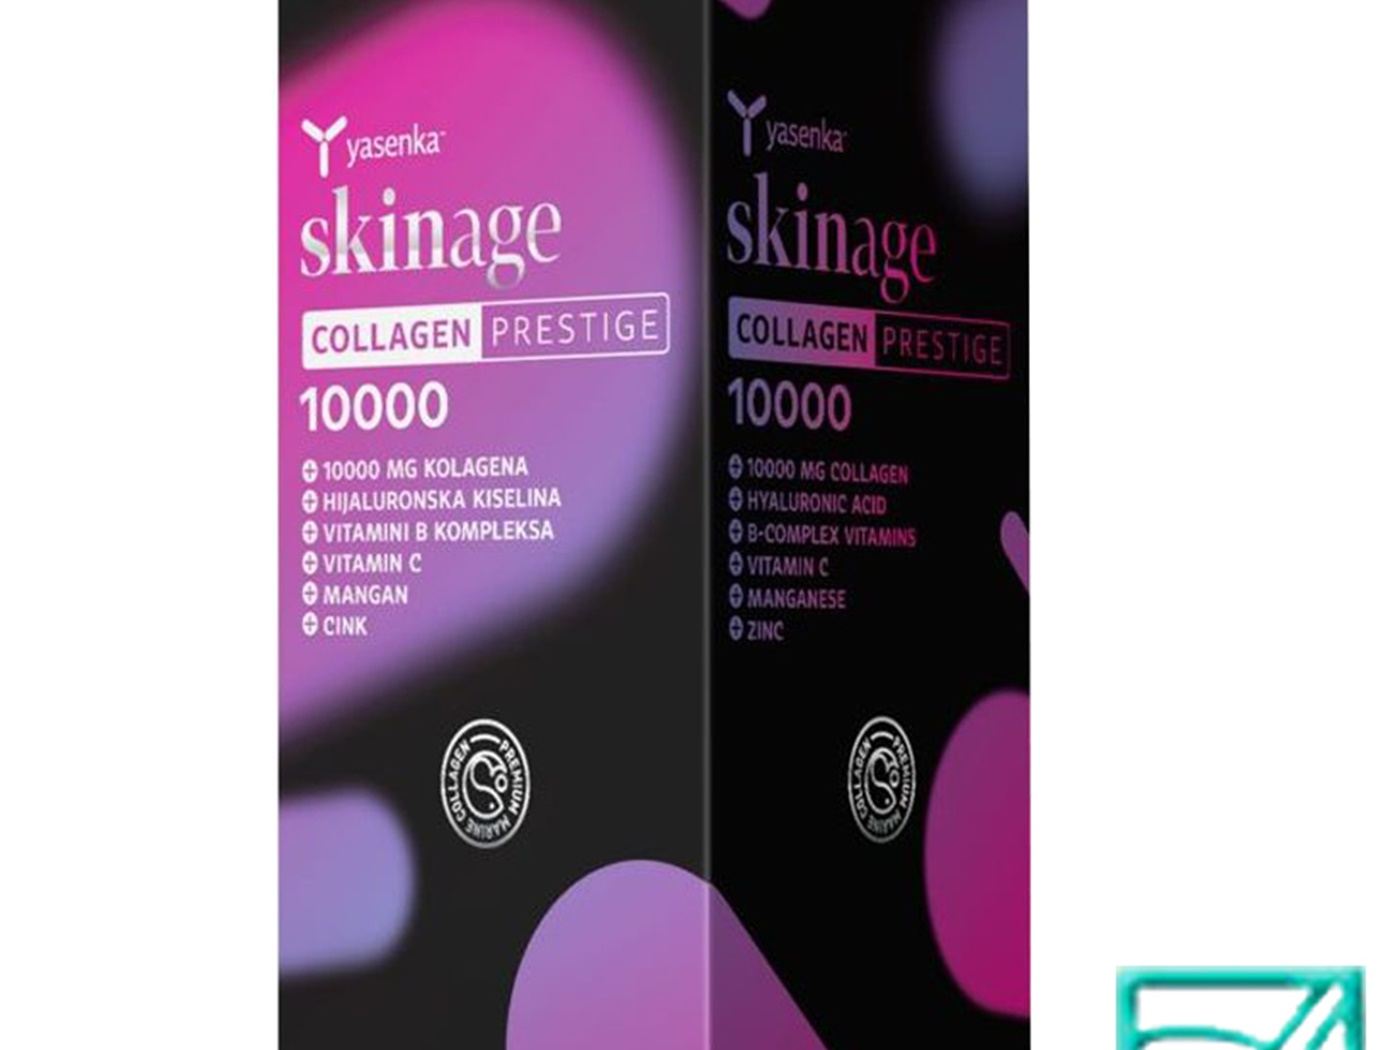 YASENKA SKINAGE COLLAGEN PRESTIGE 10000 500ml